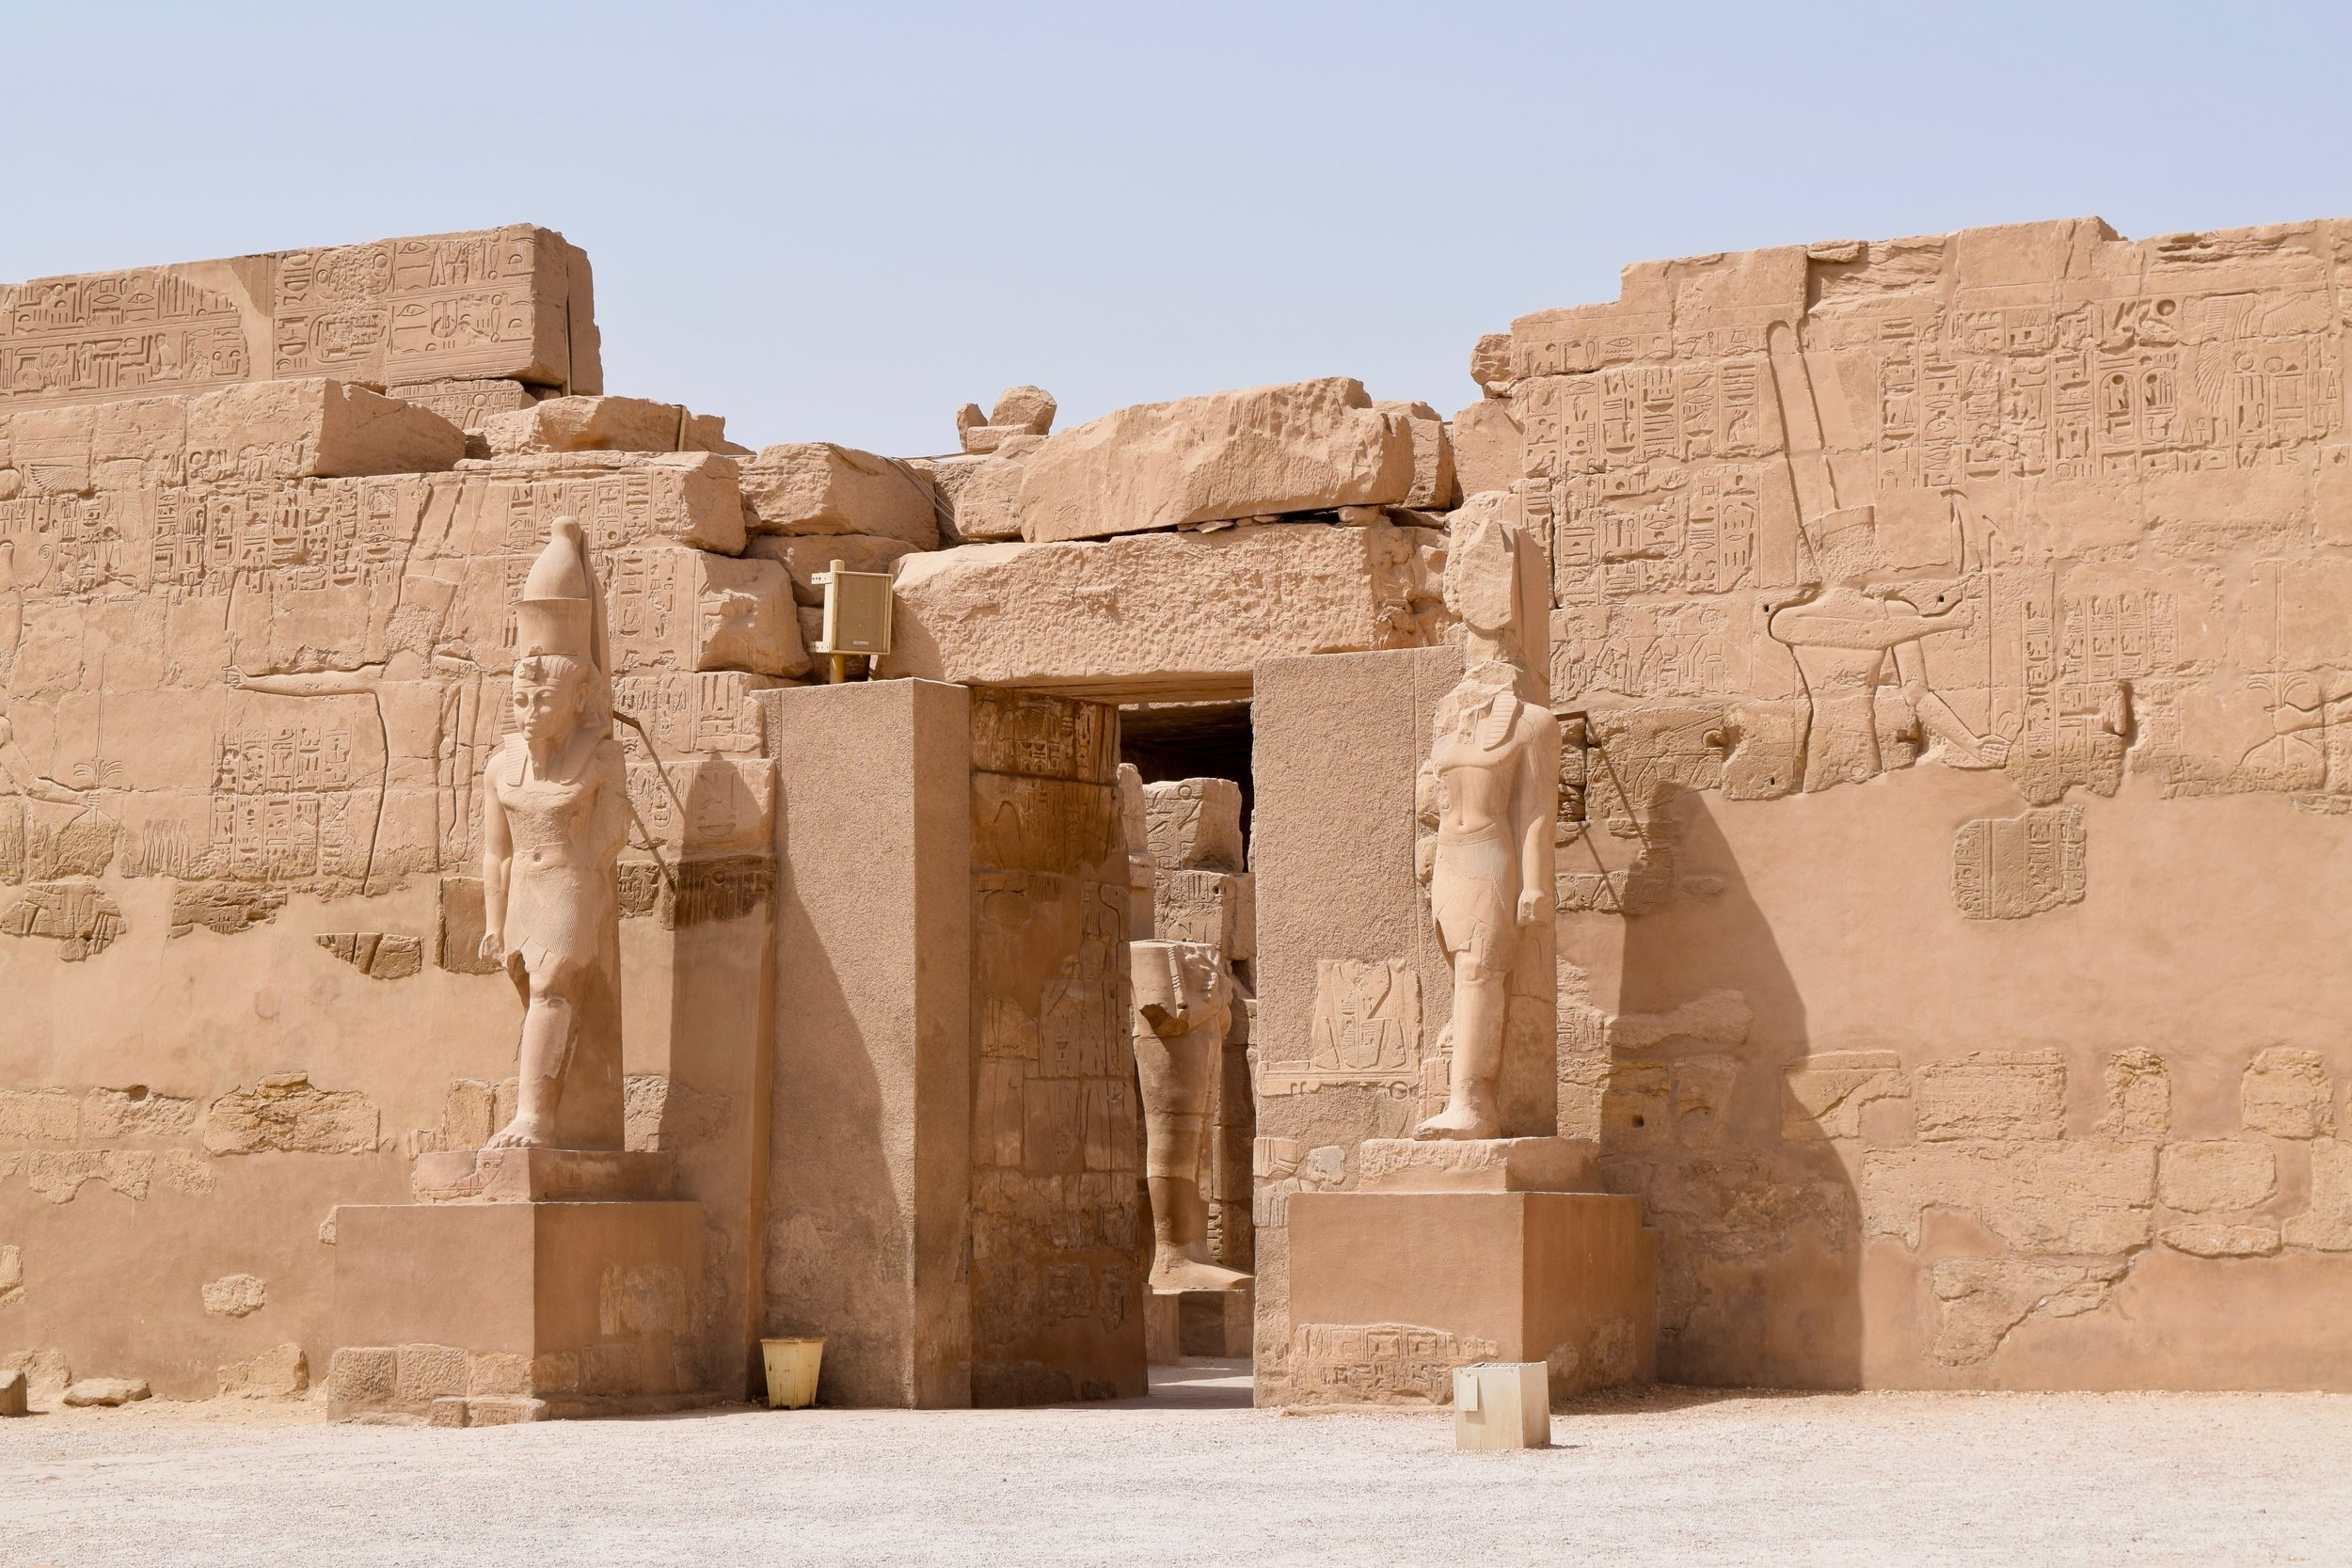 Statues of the Pharaoh on a pedestal